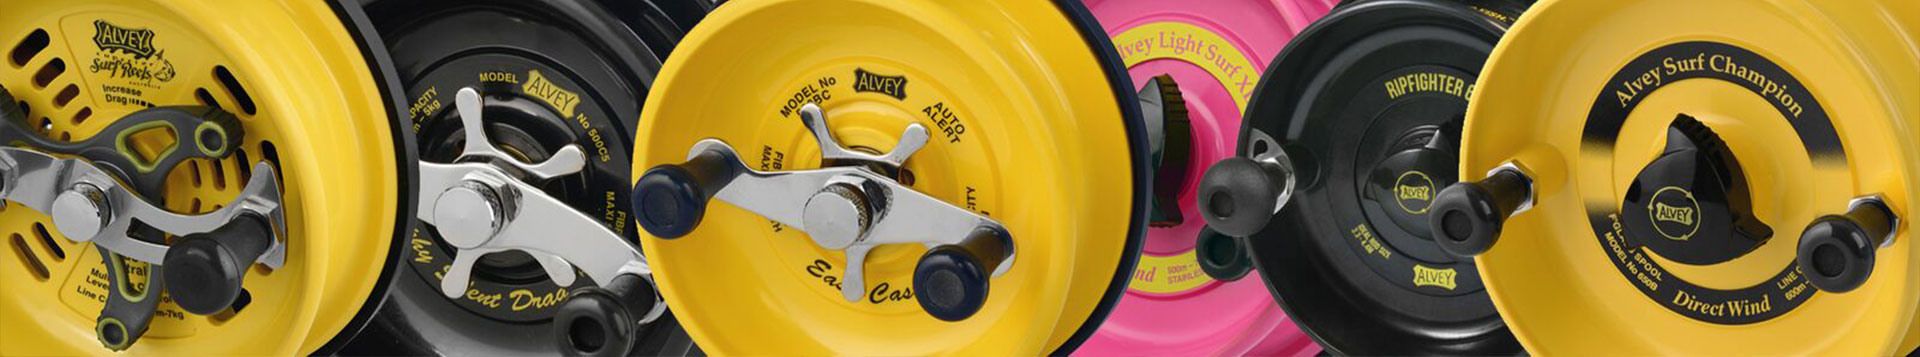 Alvey Fishing Reels